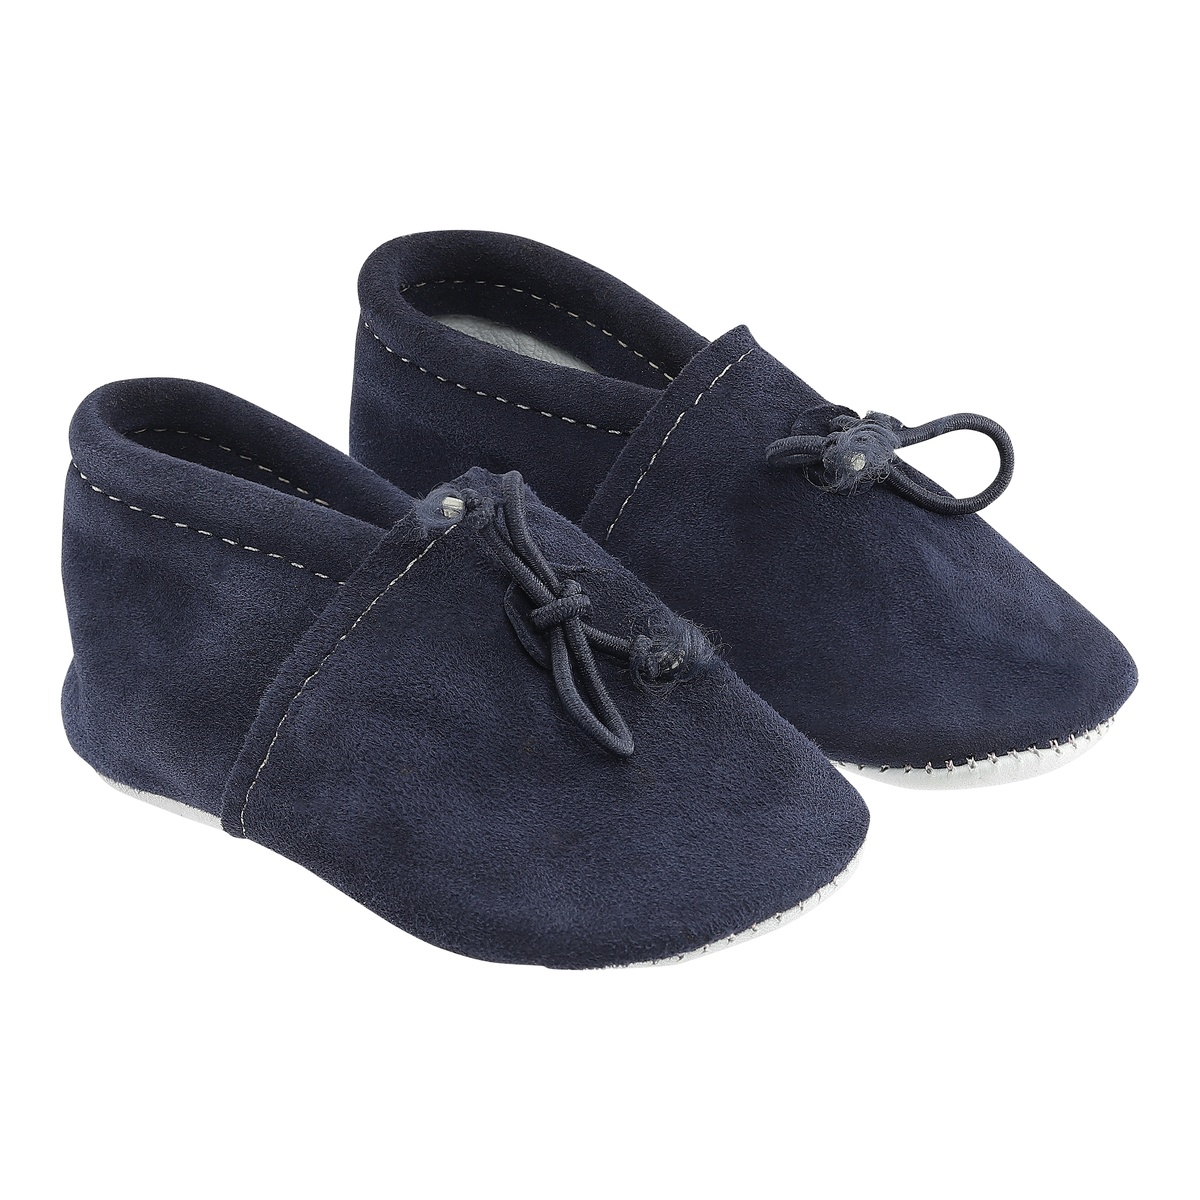 Blue Vegetable Tanned Leather Baby Moccasins